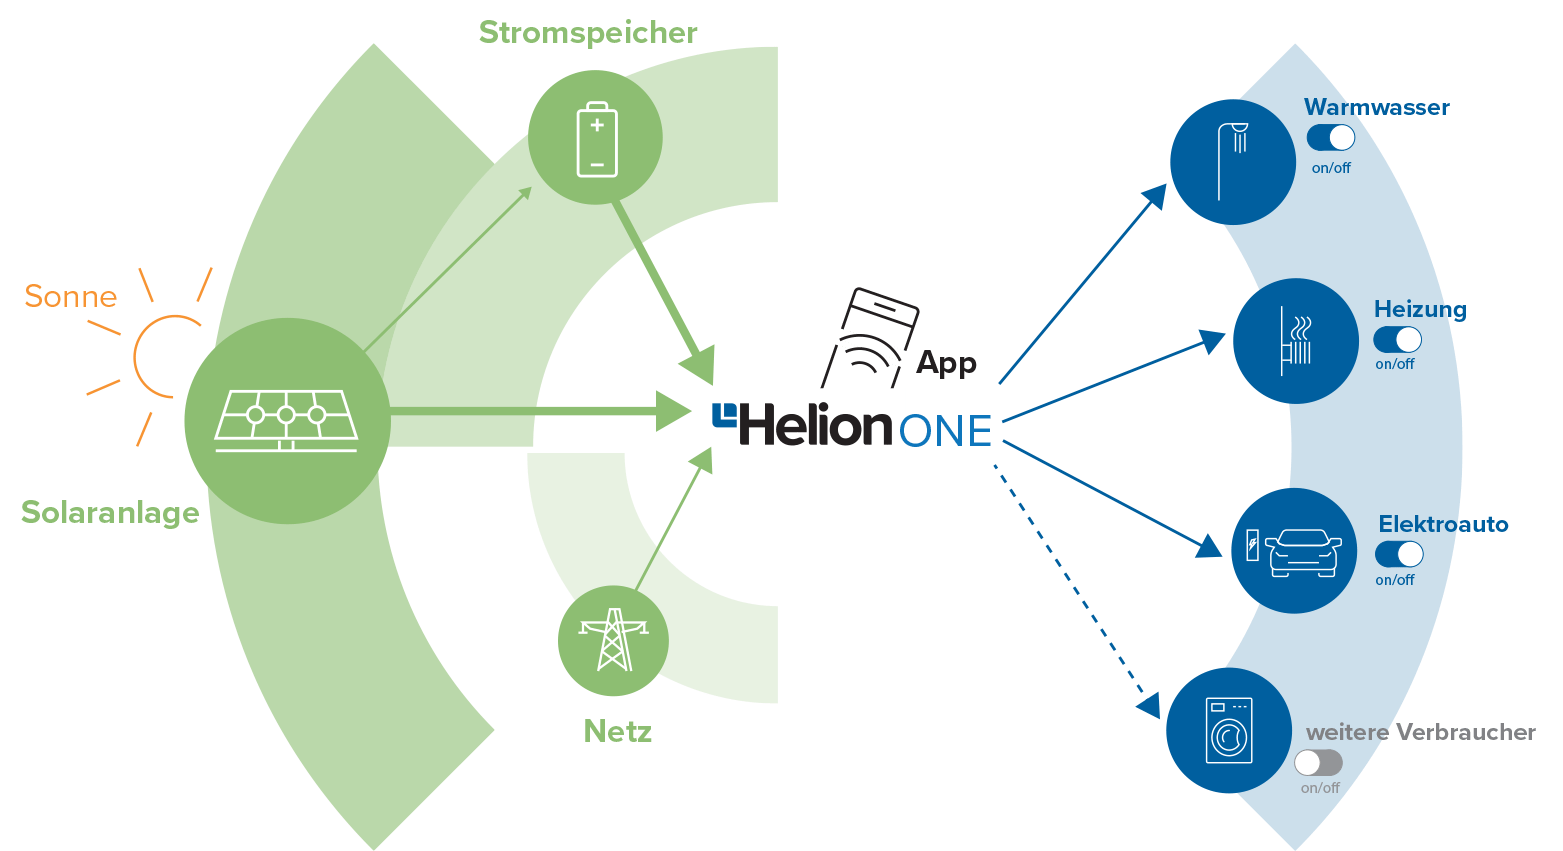 Helion ONE